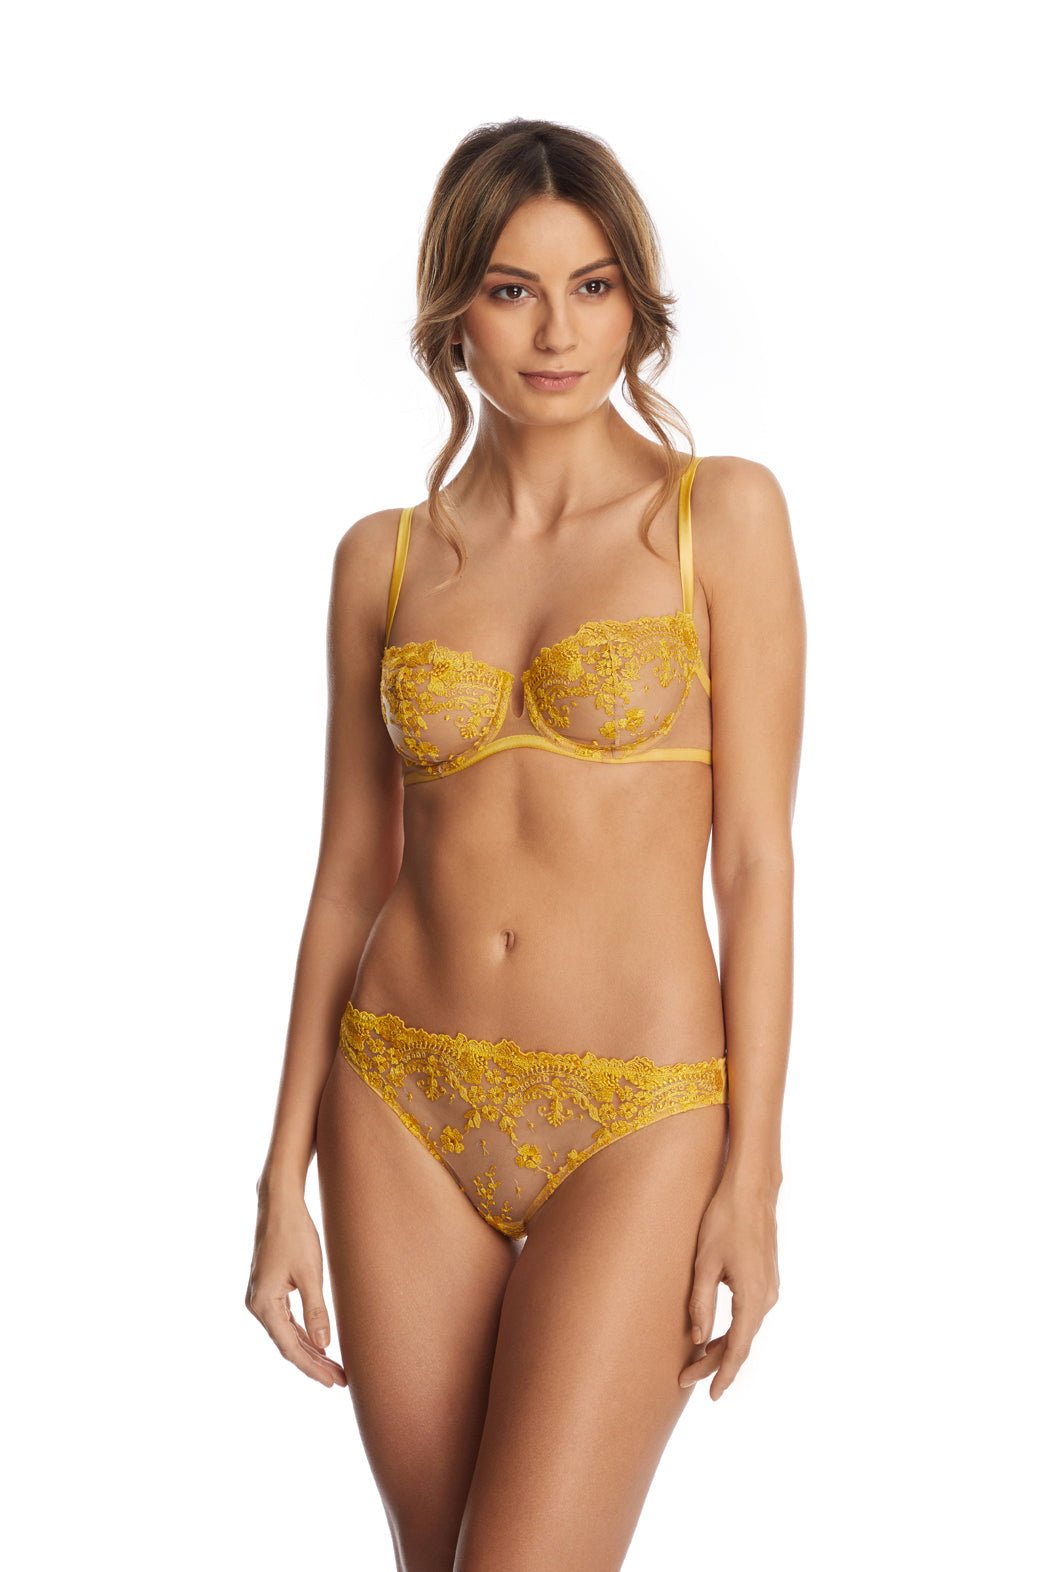 I.D. Sarrieri embroidered Balconette Bra in Sunflower